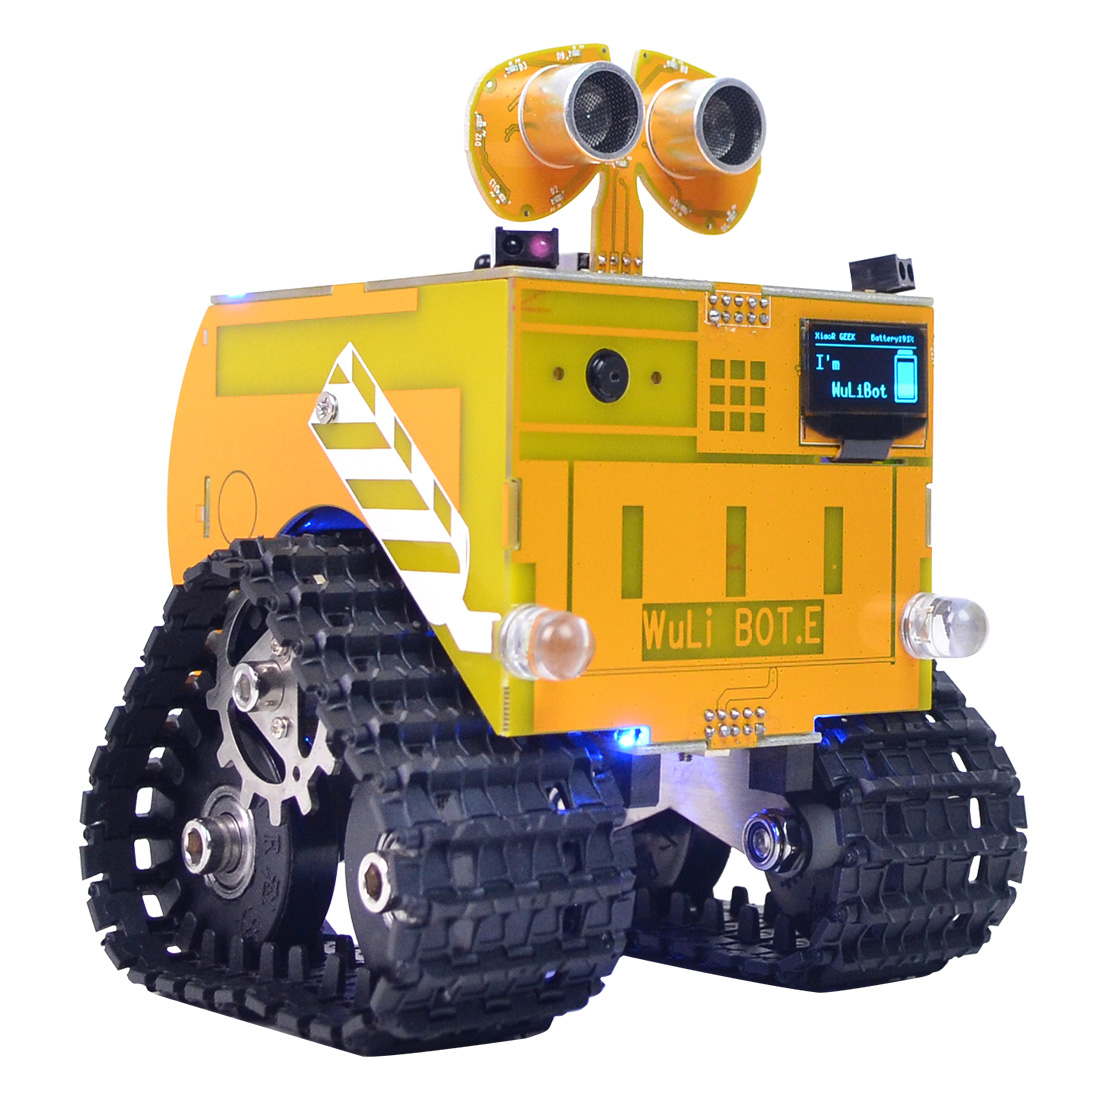 Programmable Robot WuliBot Scratch + Mixly RC Programming Track Car Steam Educational Toys With/Without Camera